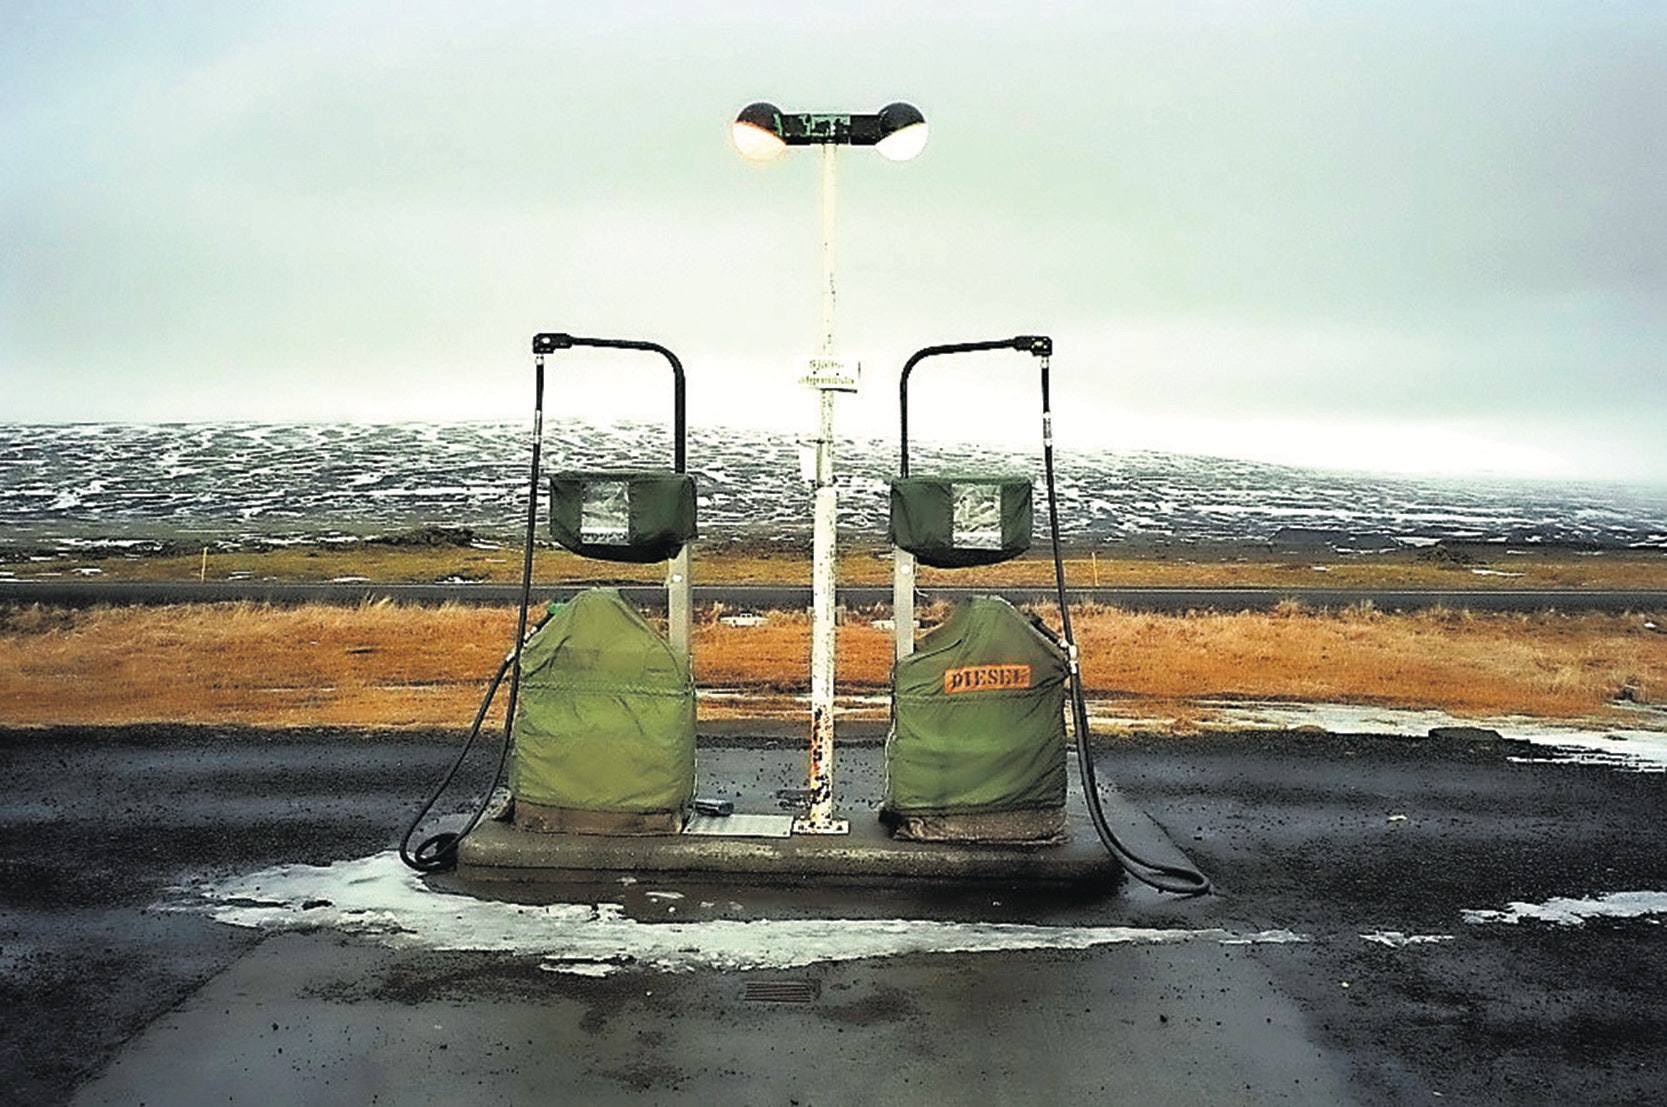 Iceland, Sudurland Region, Hrauneyjar, last gas station before the track of Sprengisandur which crosses Iceland from south to north